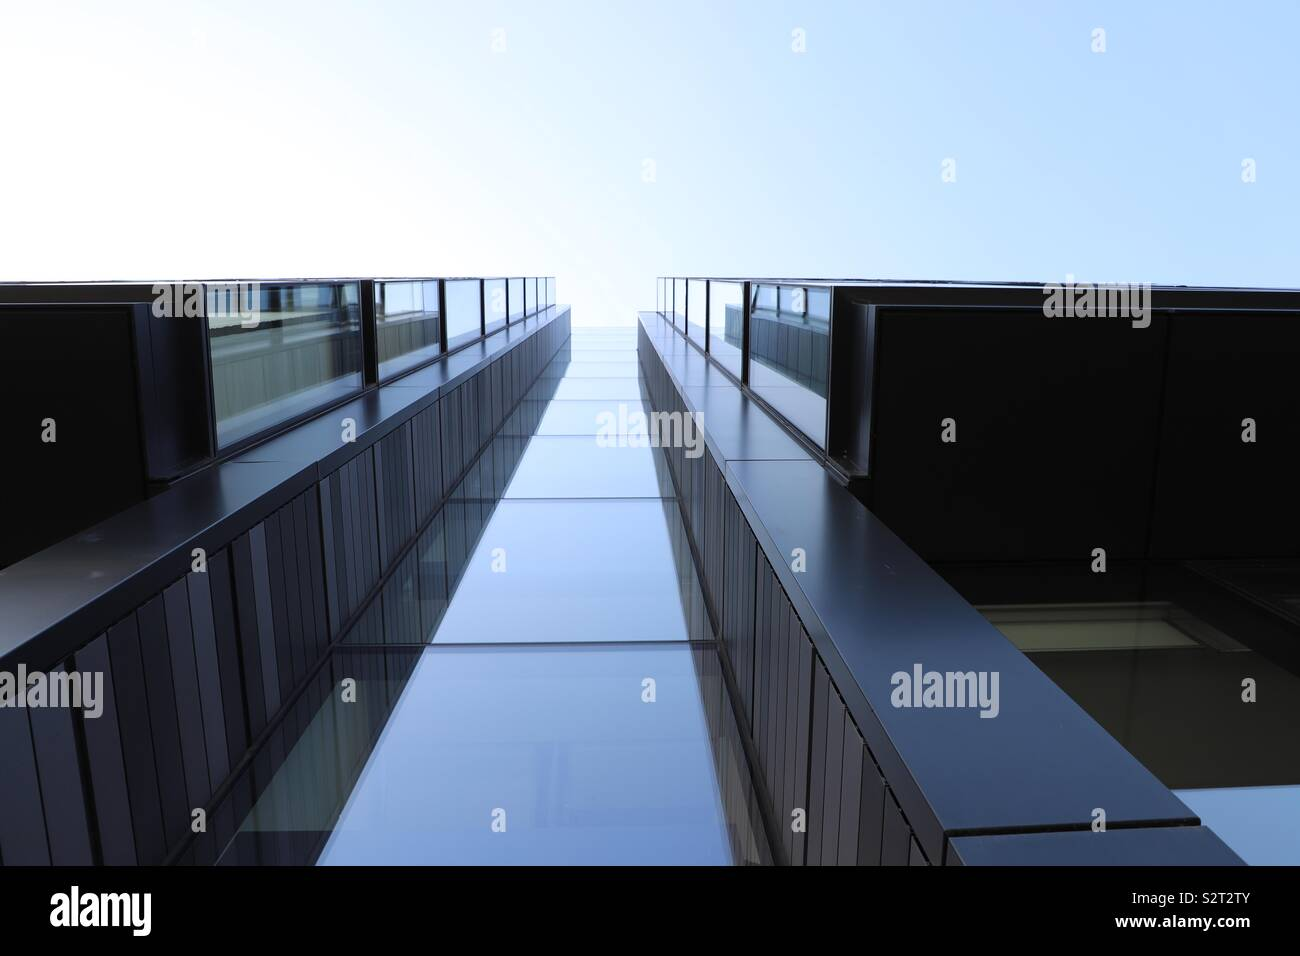 Abstract view of modern building Photo Stock